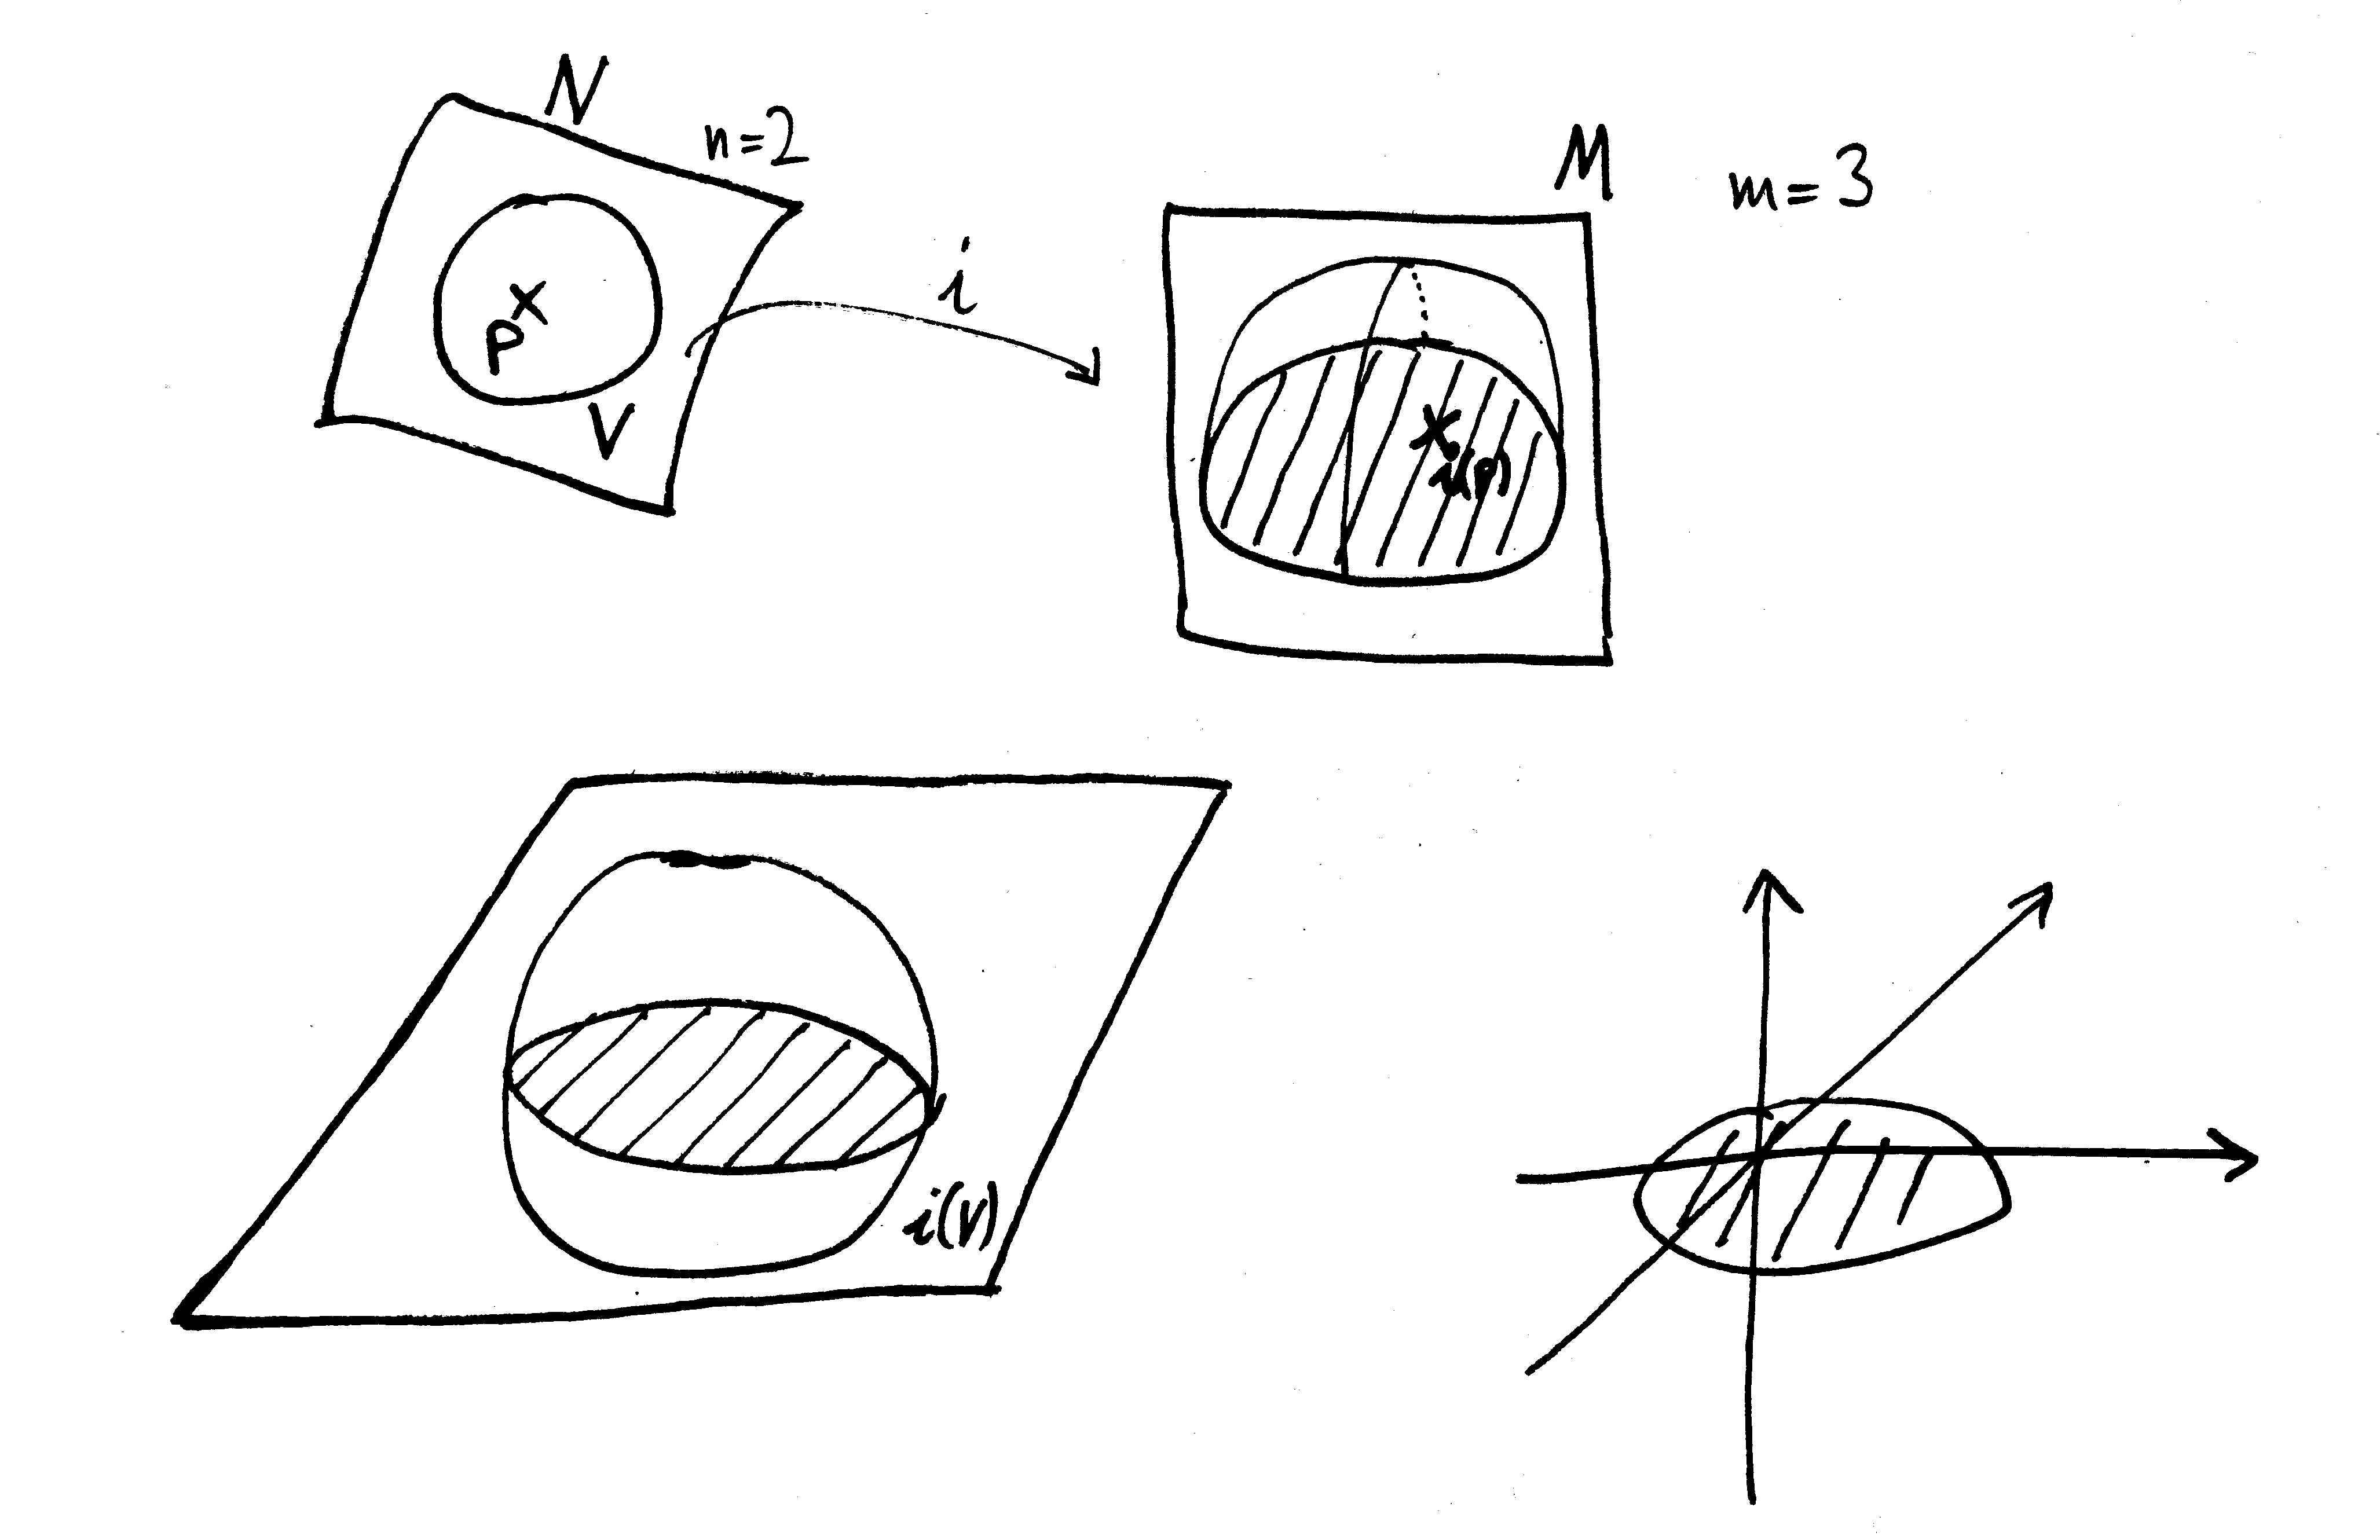 diffgeoIV/sketches/20.png